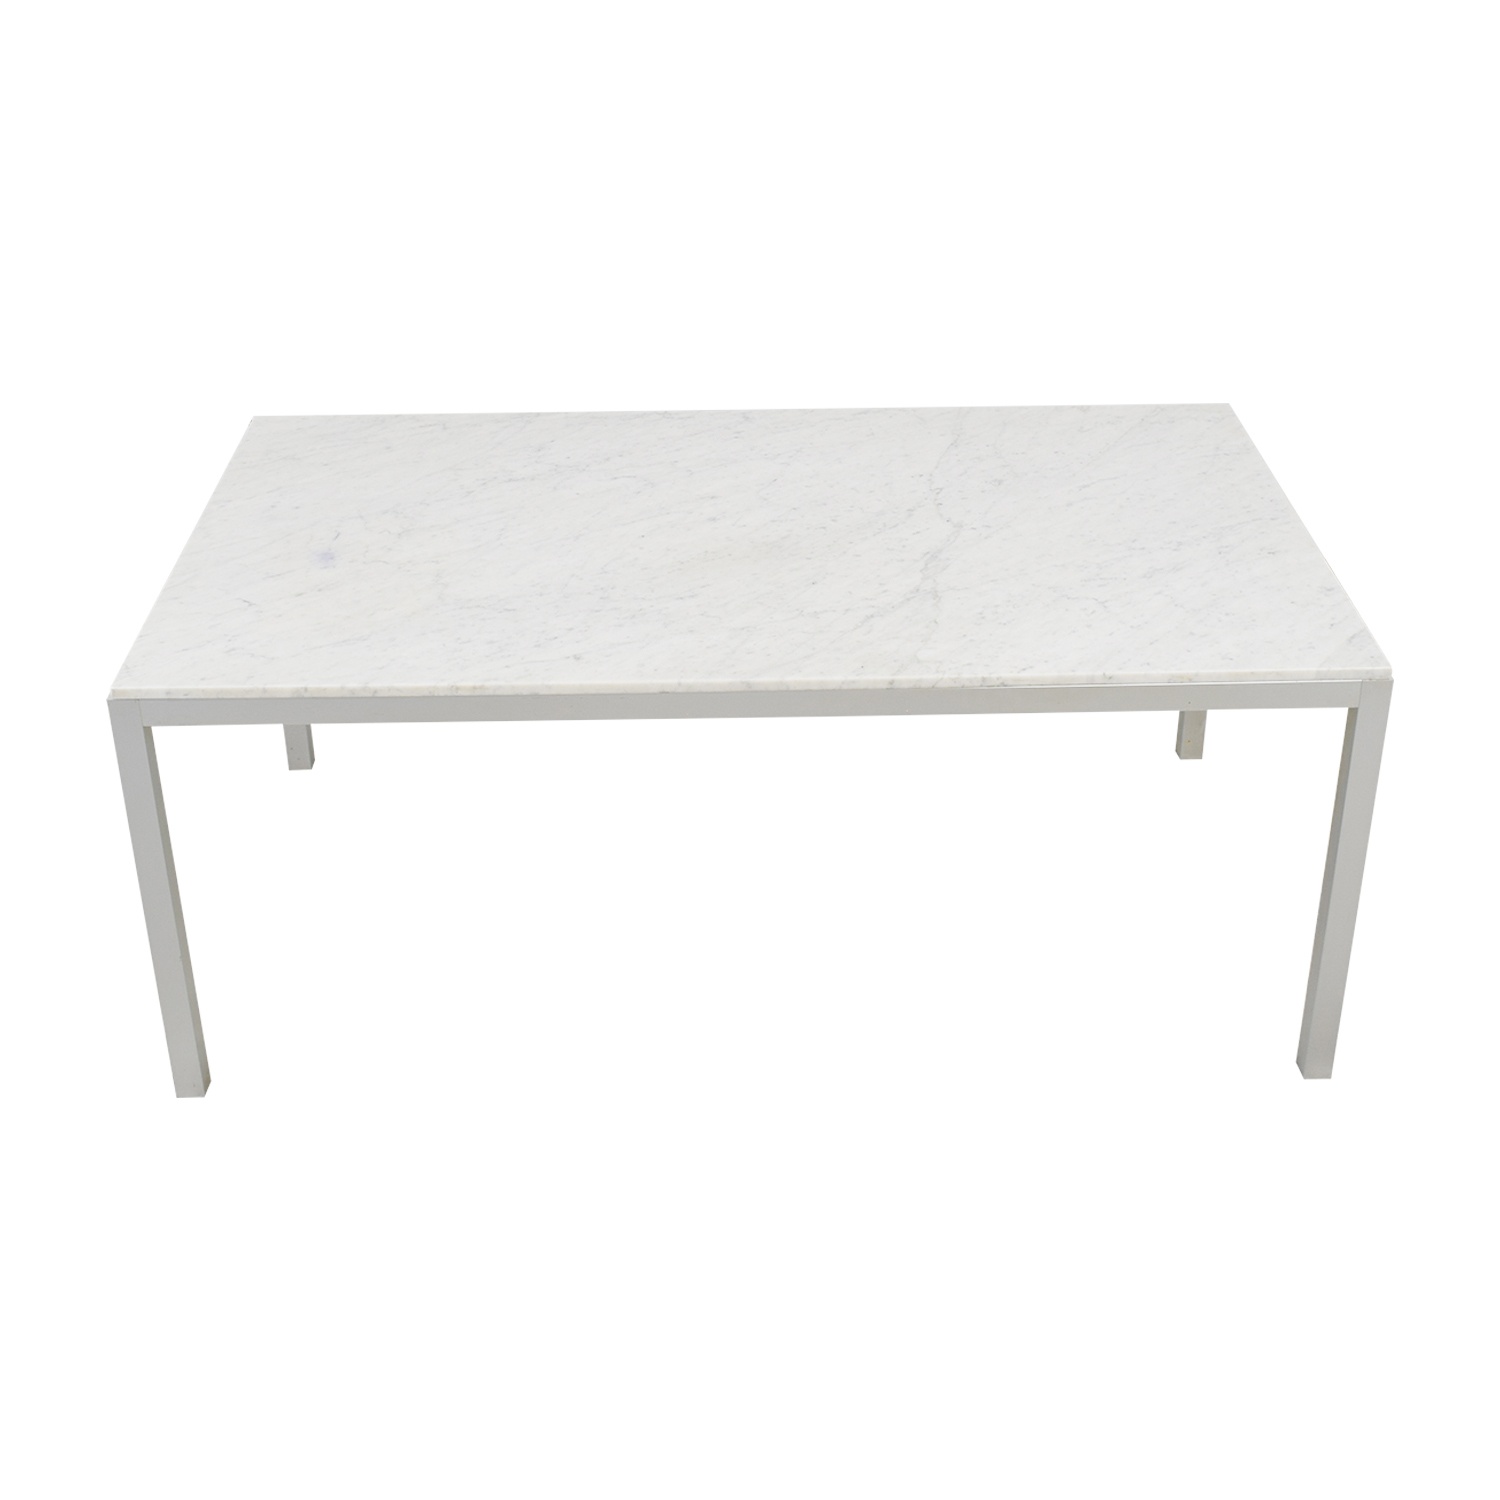 MDF Italia MDF Italia White Marble Dining Table or Desk Dinner Tables